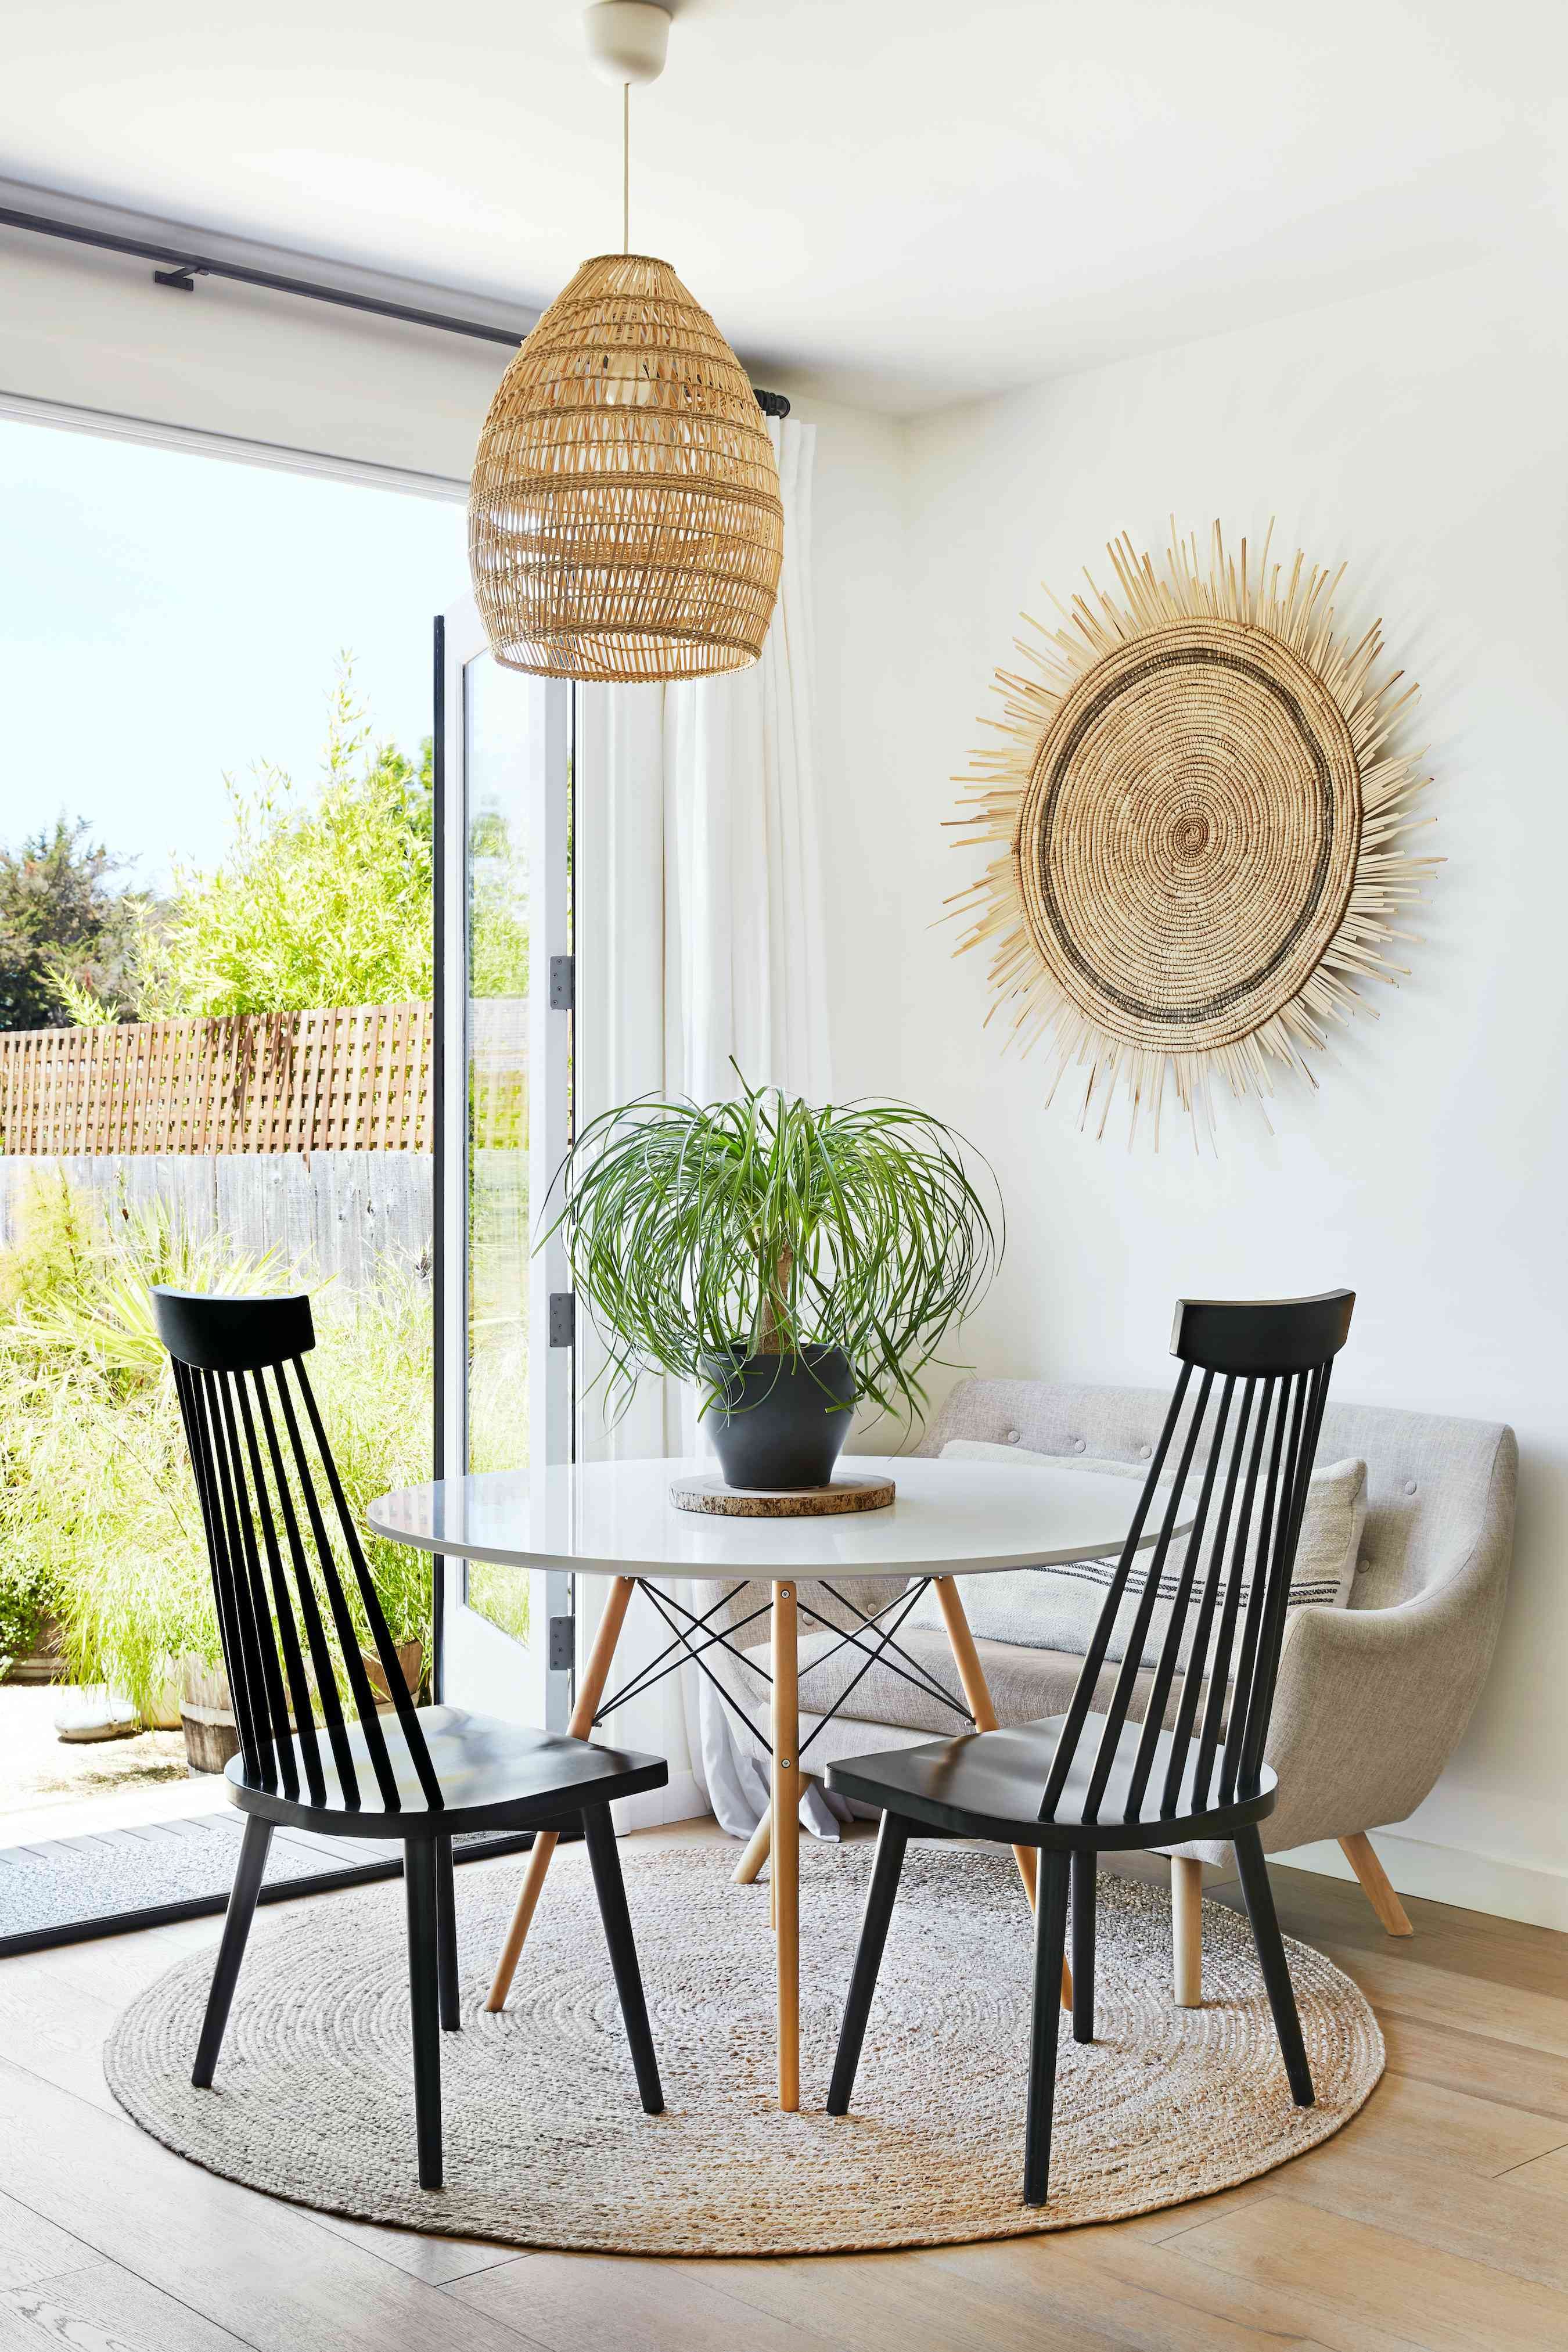 Sunny dining room with ponytail palm.